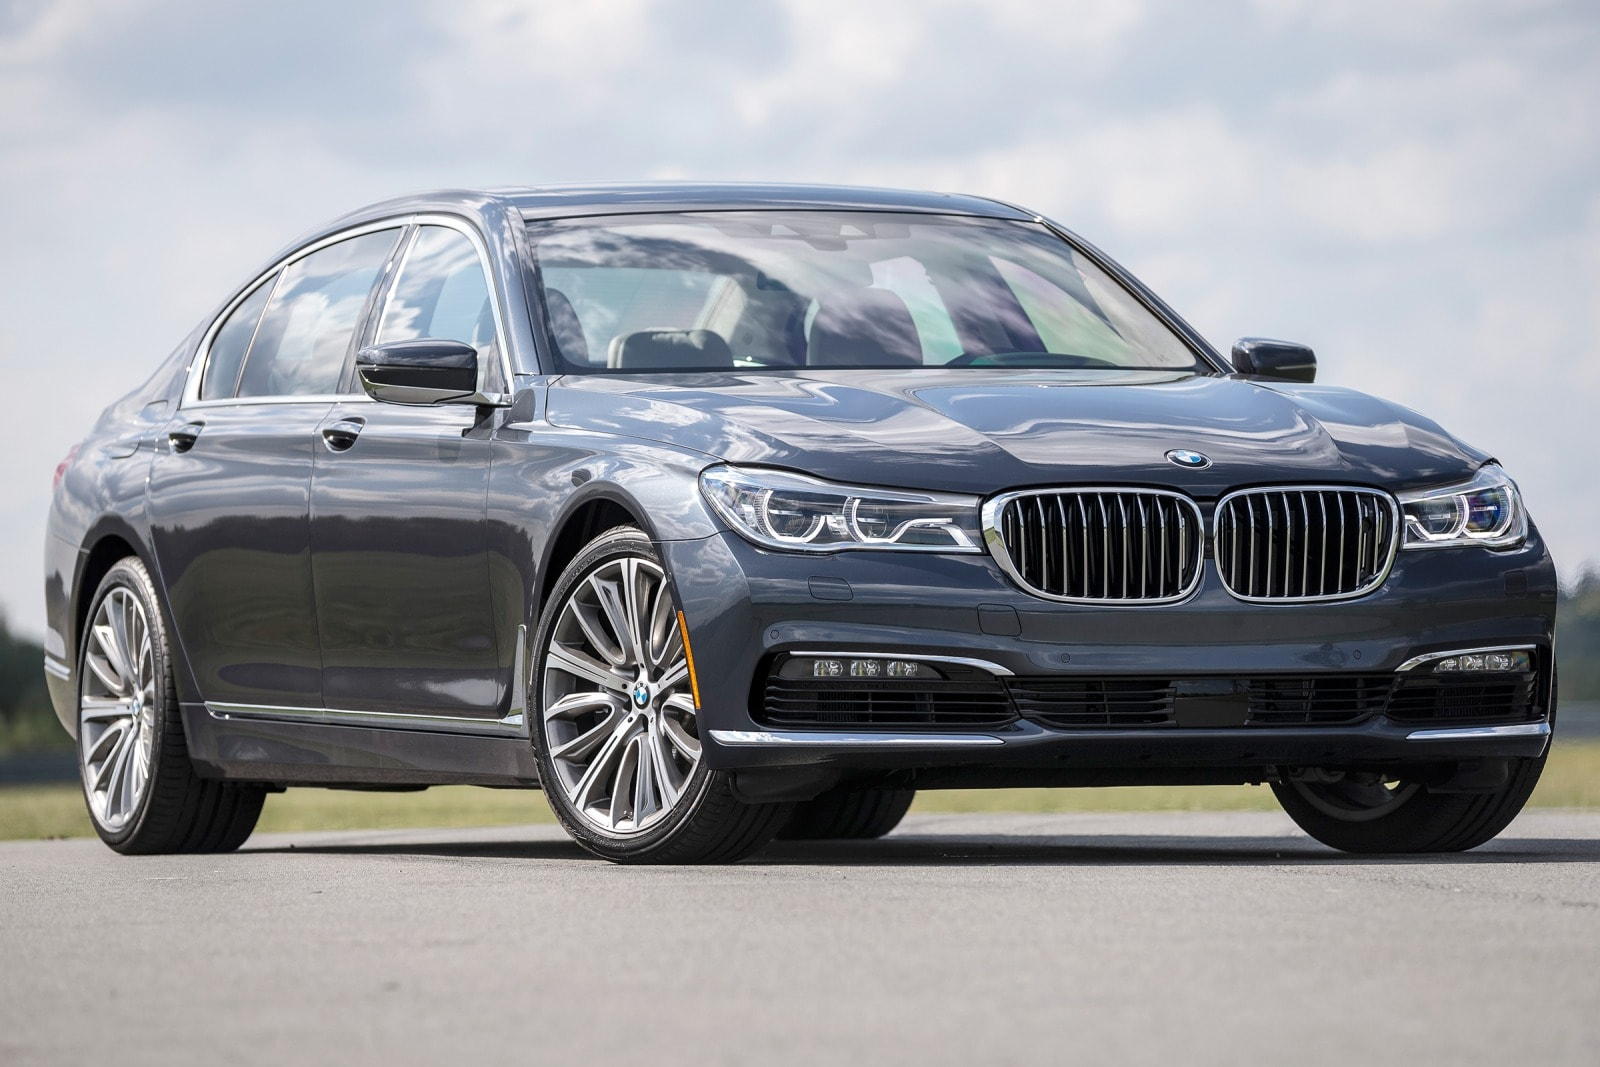 hight resolution of the 2017 bmw 7 series has an athletic stance that hints at a sporting character and that s what the optional predictive suspension provides